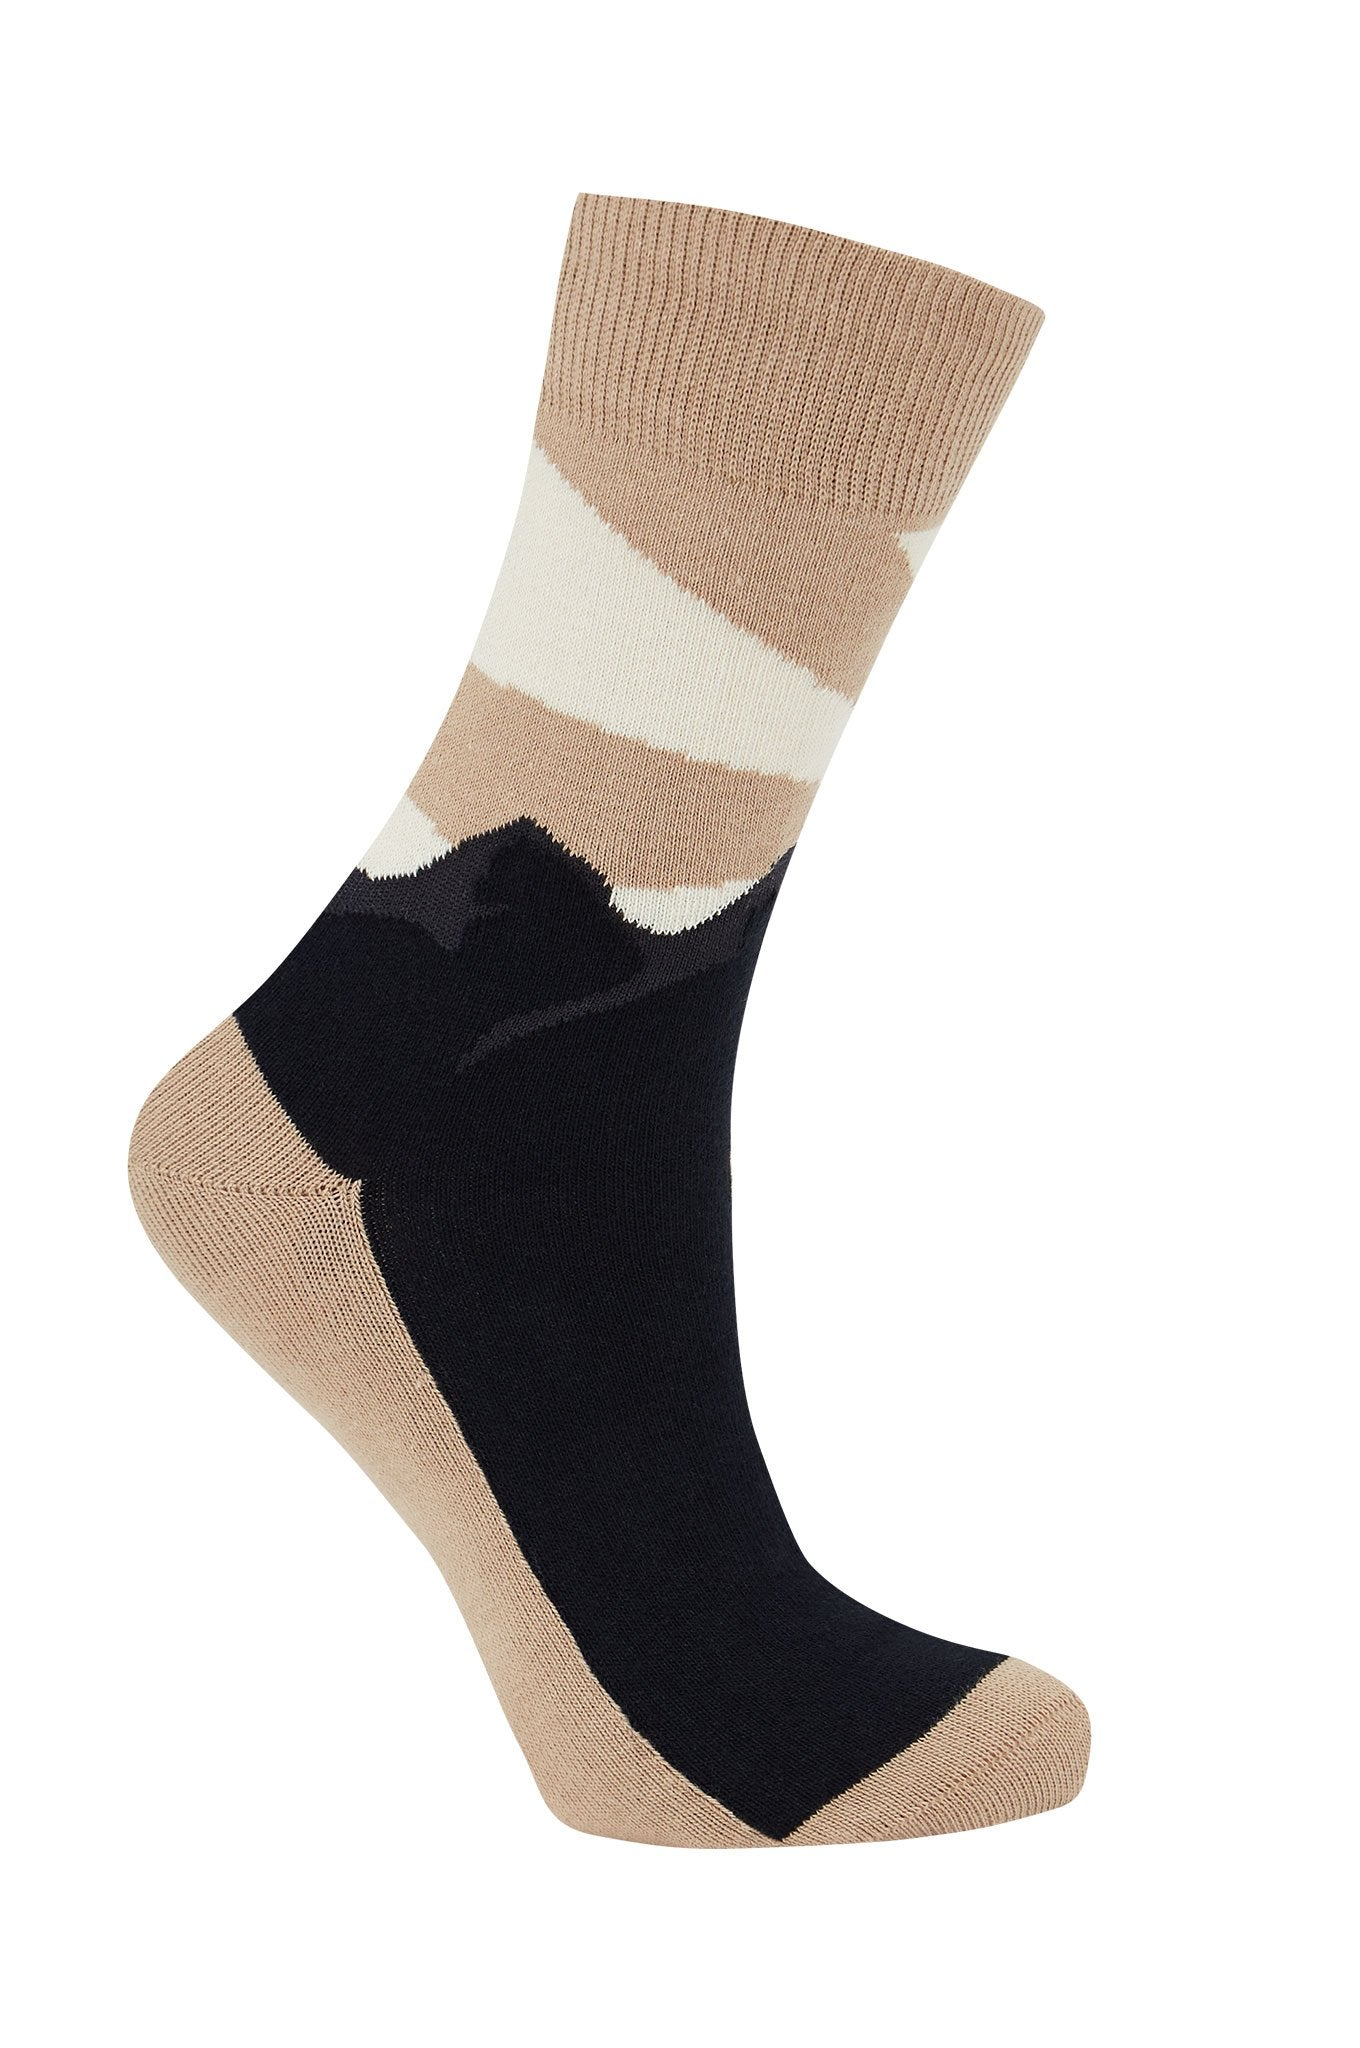 Socks - TIBET Ink - GOTS Organic Cotton Socks